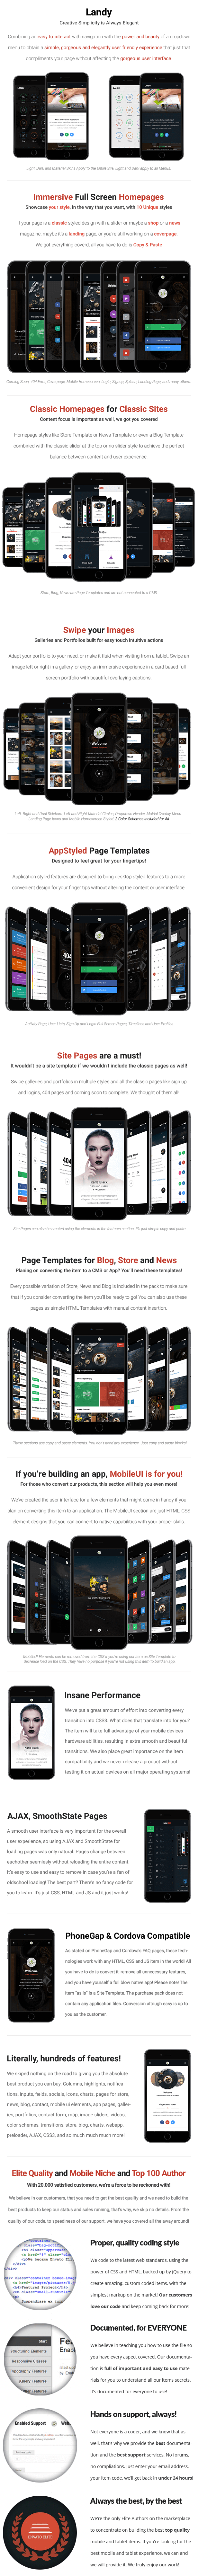 Landy Mobile | Mobile Template - 10